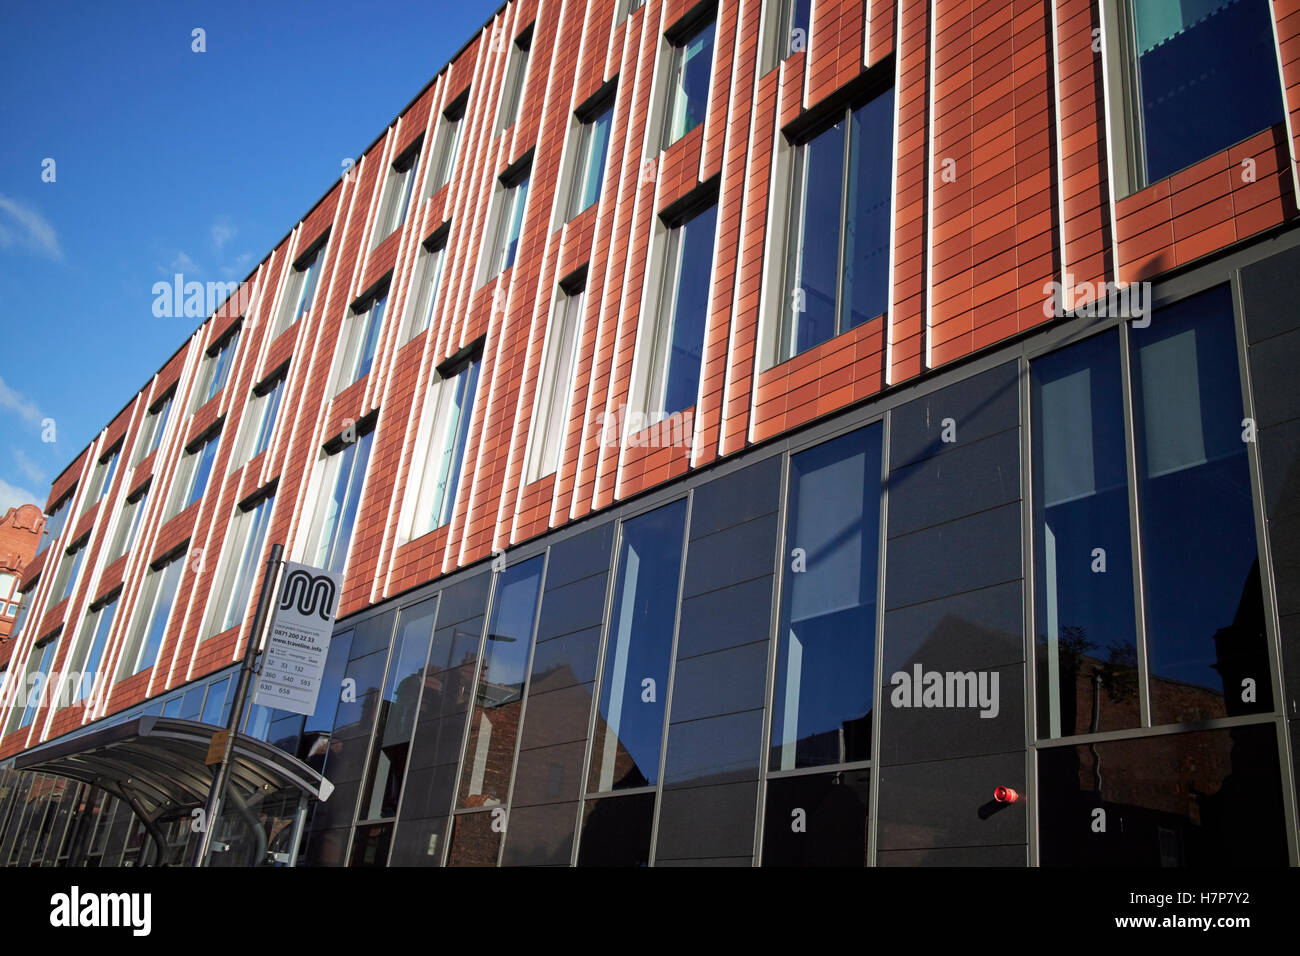 wigan life centre healthy living zone leisure centre england uk - Stock Image